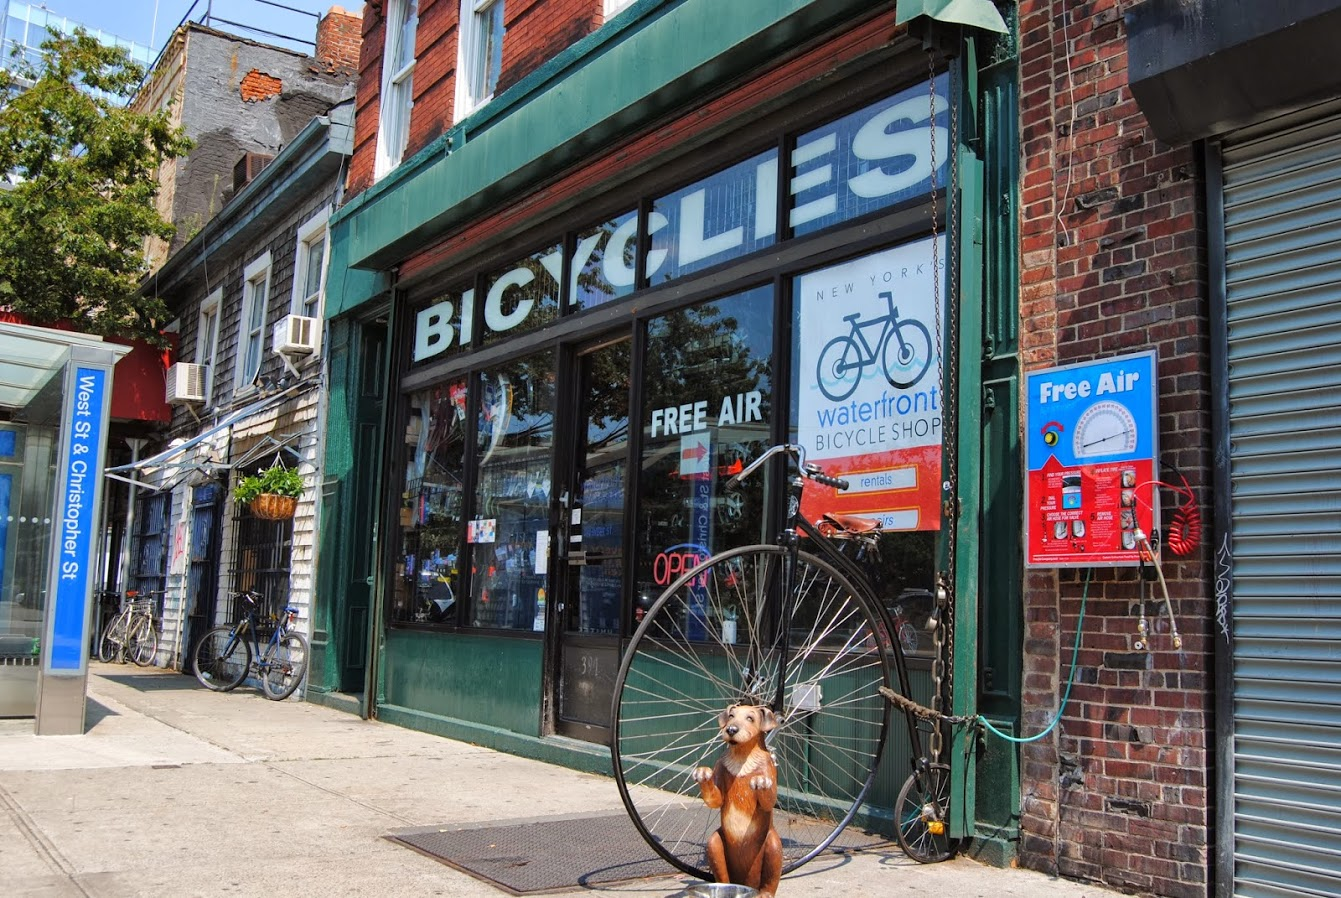 Waterfront Bicycle Shop